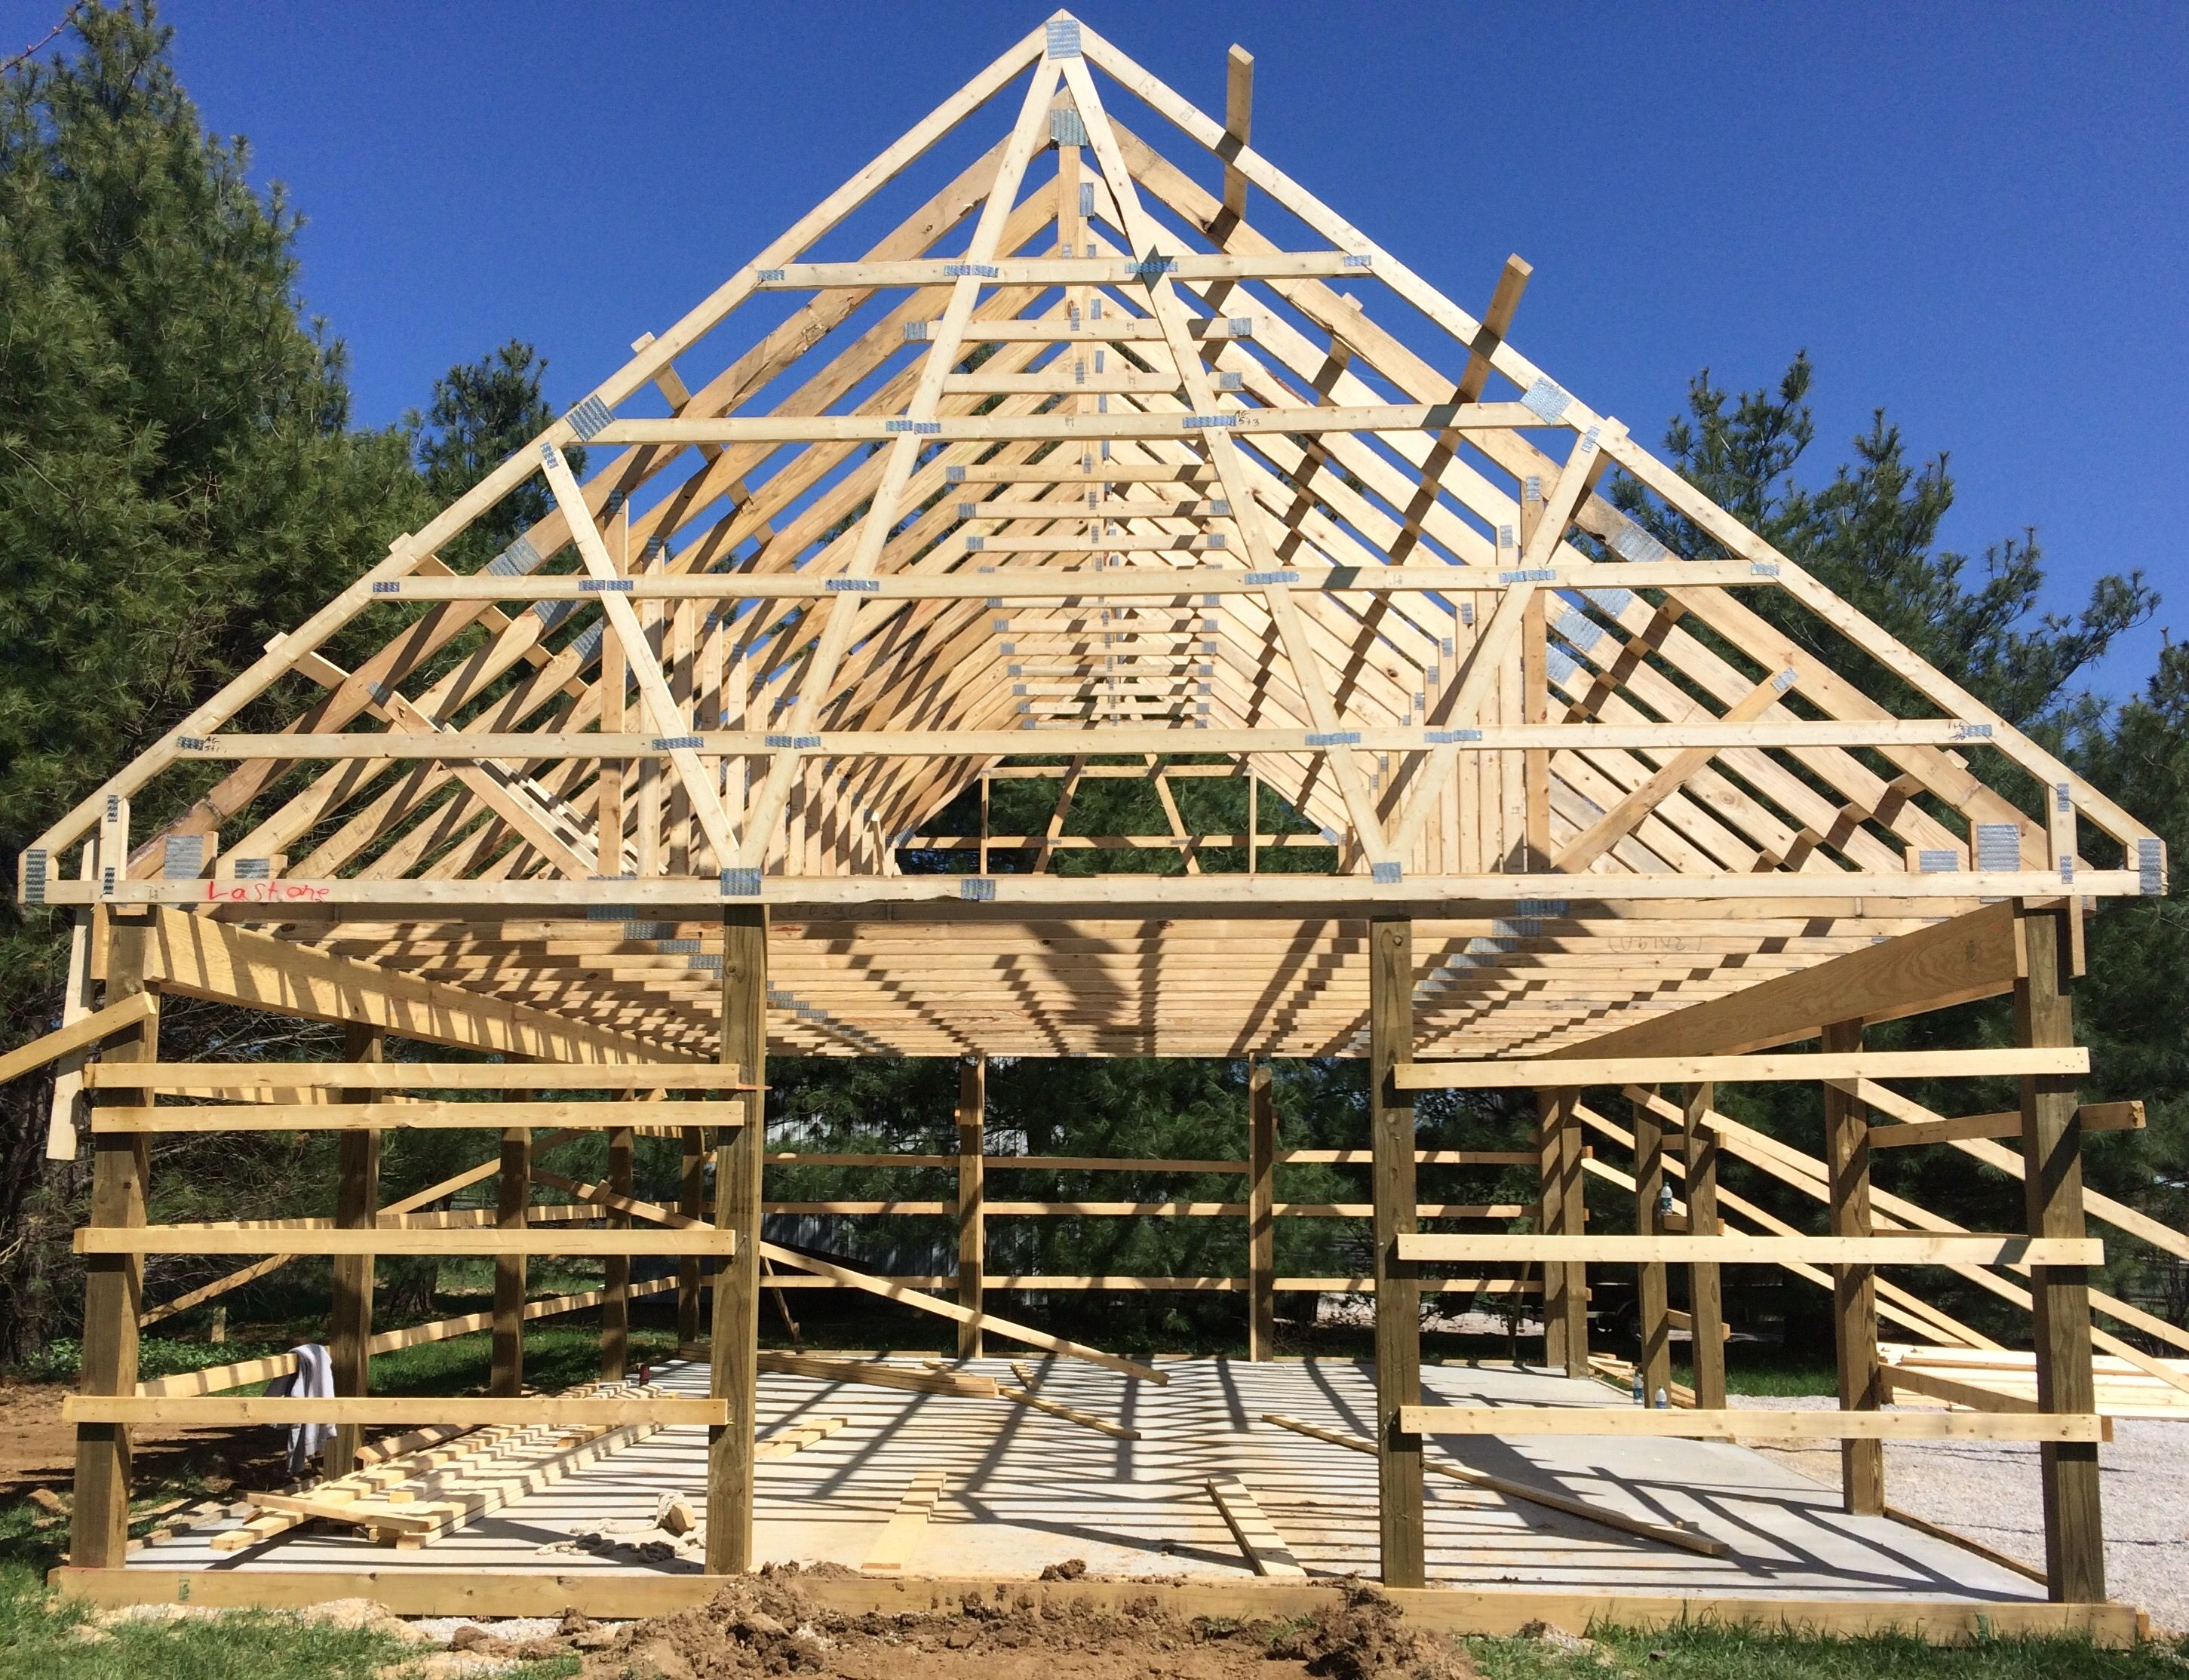 Framing Of 24 X 32 Pole Barn With 10 12 Pitch Roof And Attic Trusses This Will Create A 32 X 12 X 9 Room Upstai Pole Barn Kits Barn Kits Building A Pole Barn